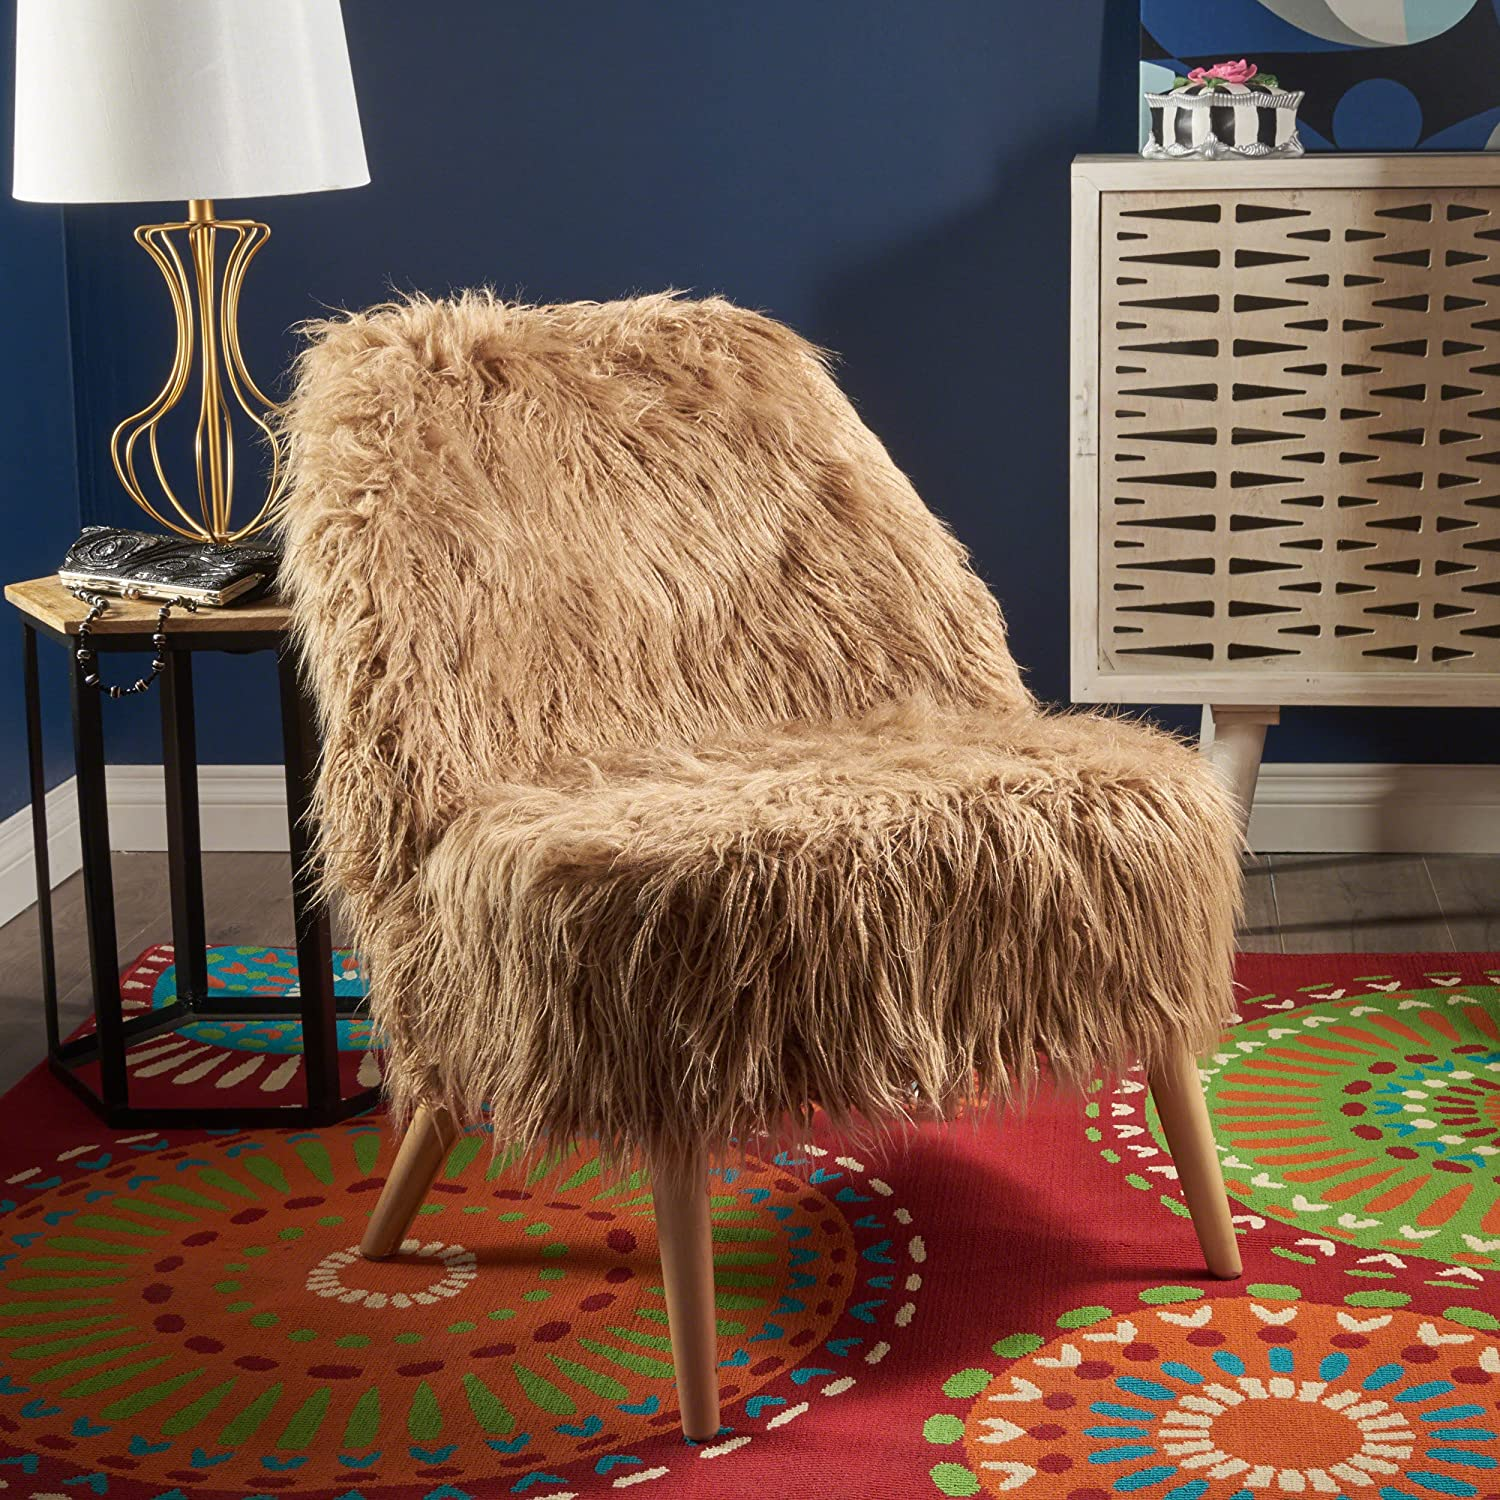 1fdd8e39d3d2 Amazon.com  Soho Glam Faux Fur Chair - Shaggy Faux Fur Accent Chair - Faux  Sheepskin Chair  Kitchen   Dining